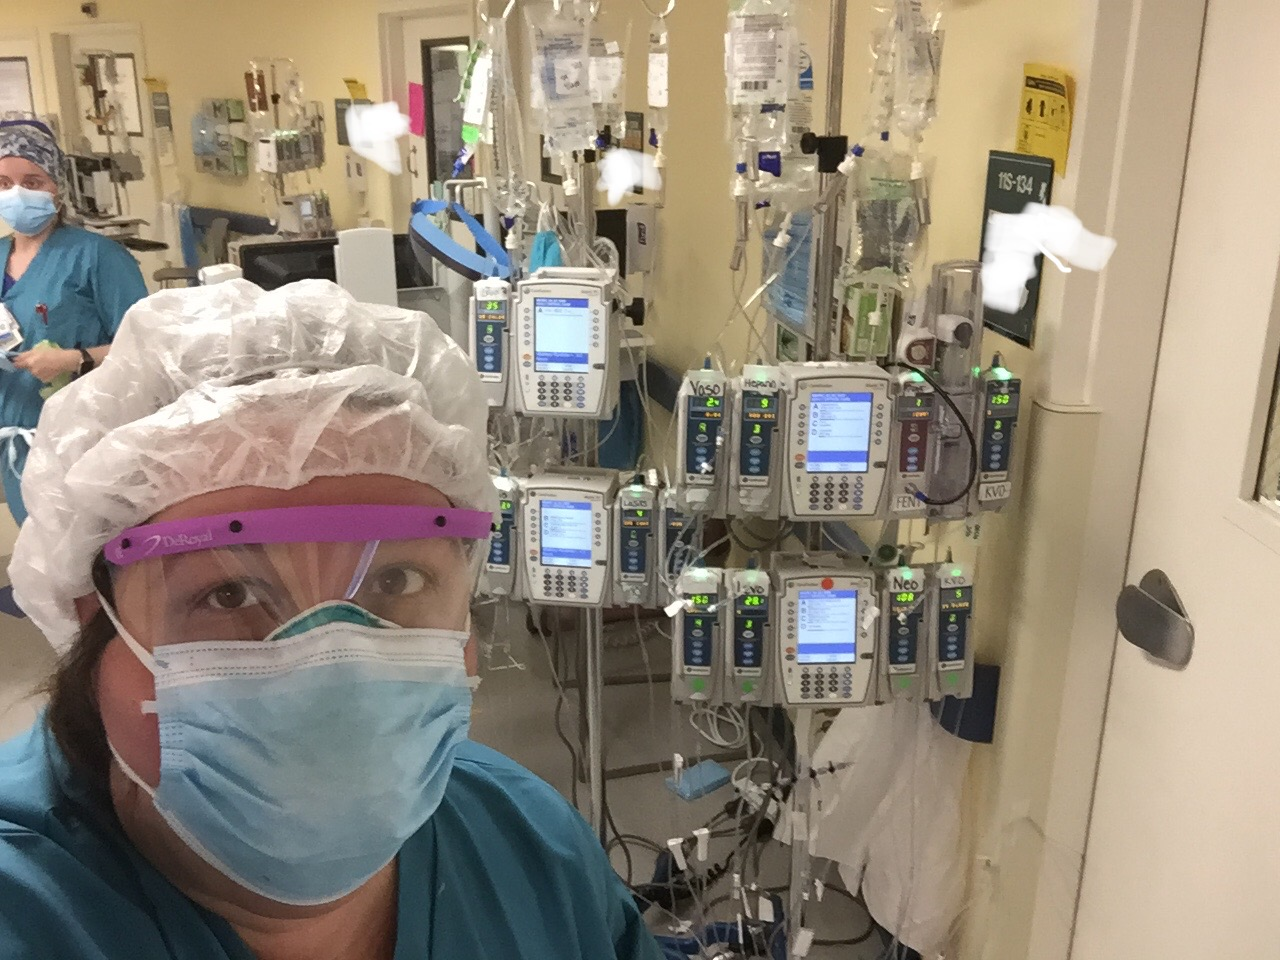 Exhausted ICU Staffers Expect to Be 'Slammed' With New COVID-19 Patients After Lockdown Ends